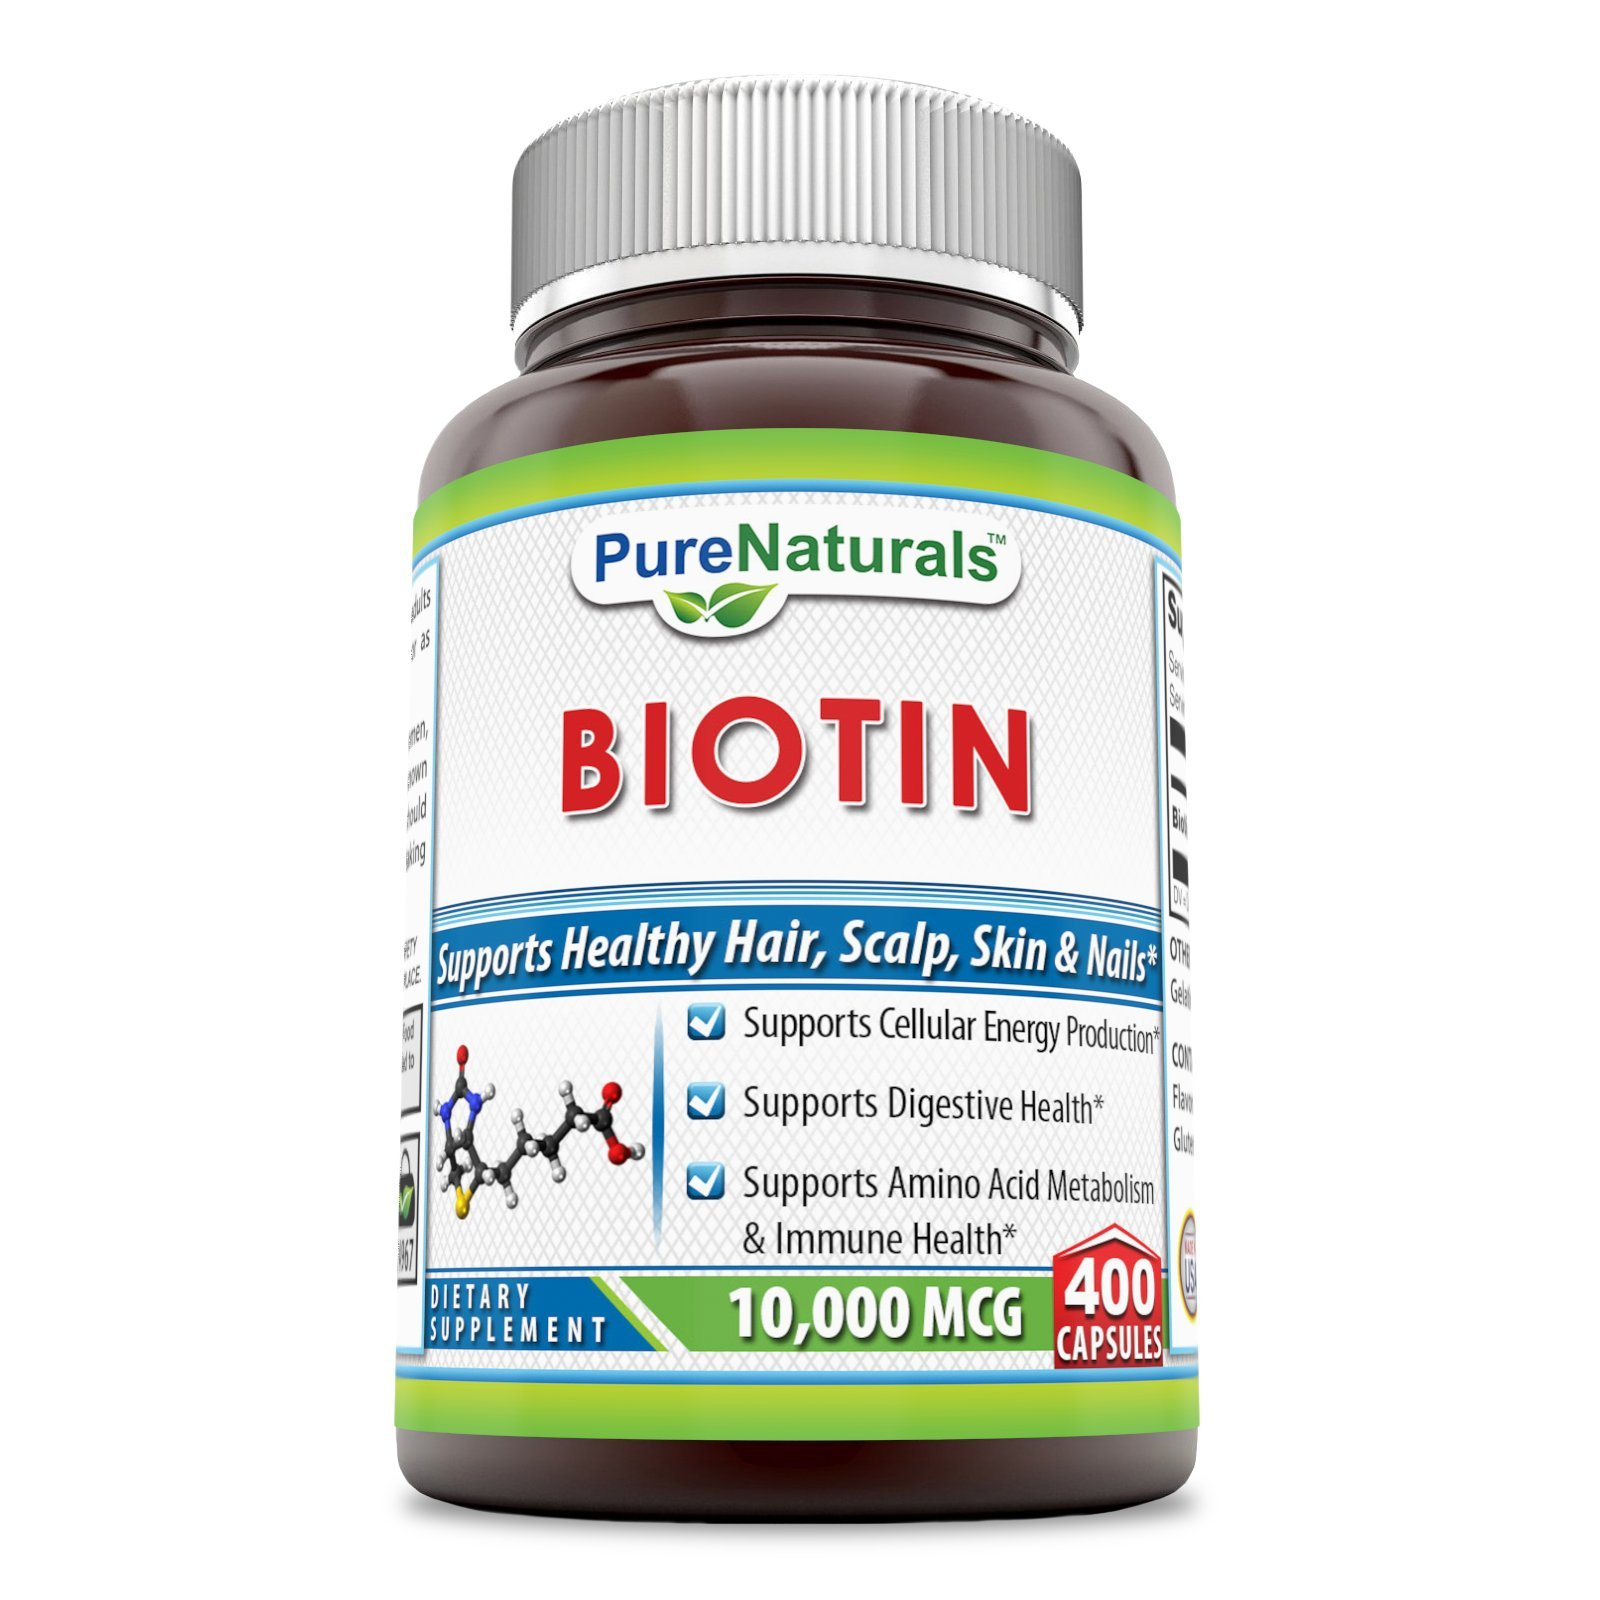 Pure Naturals Biotin 10,000 Mcg, 400 Capsules- Supports Cellular Energy Production, Supports Digestive Health and Immune Health